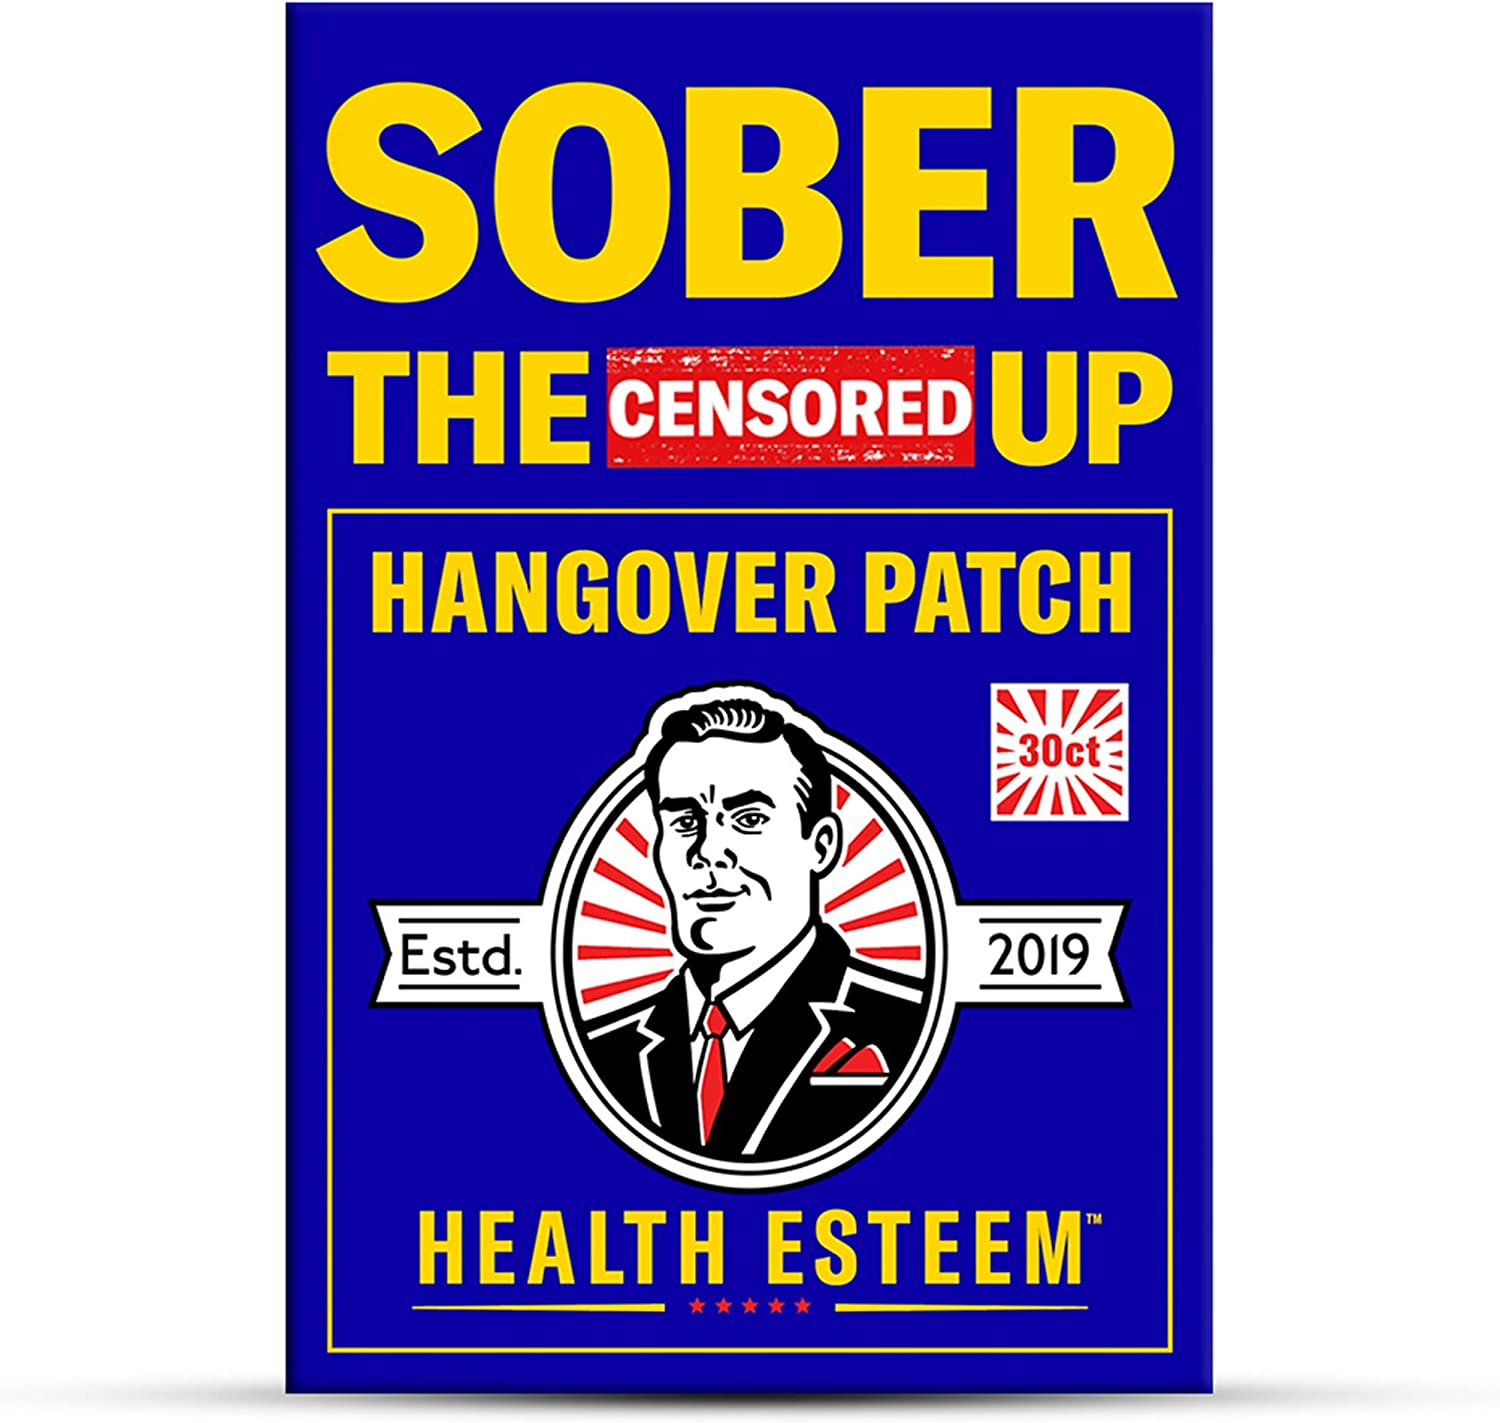 Hangover Patch for Hangover Cure & Hangover Prevention (30 Hangover Patches) | Hangover Kit Supplies Alternative to Hangover Pills & Hangover Drinks | Sober The (Censored) Up by Health Esteem